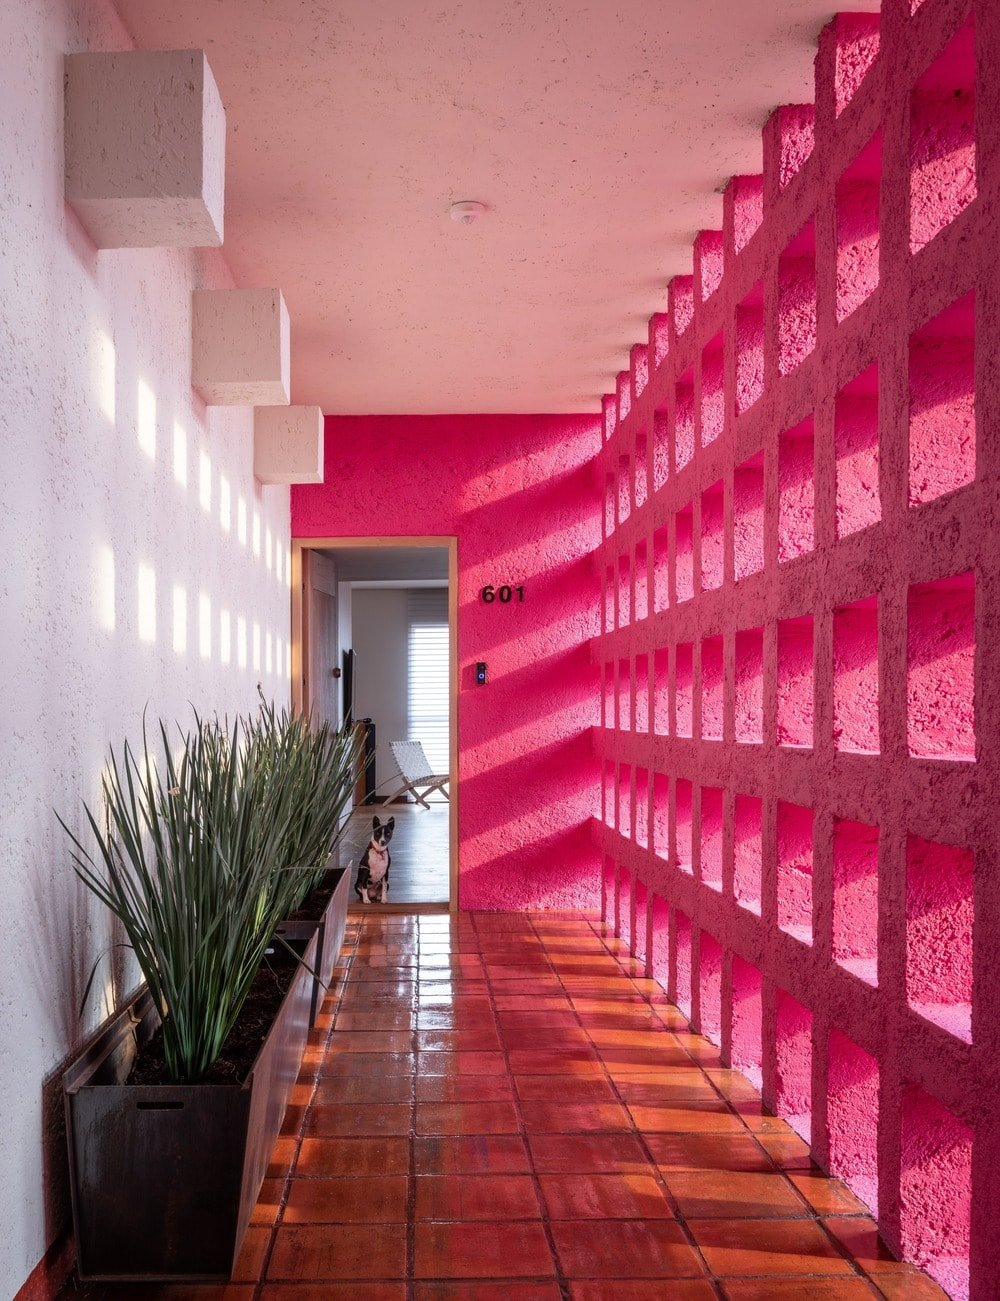 This is the hallway leading to the main door adorned with planters on one side and a bubble gum pink wall.